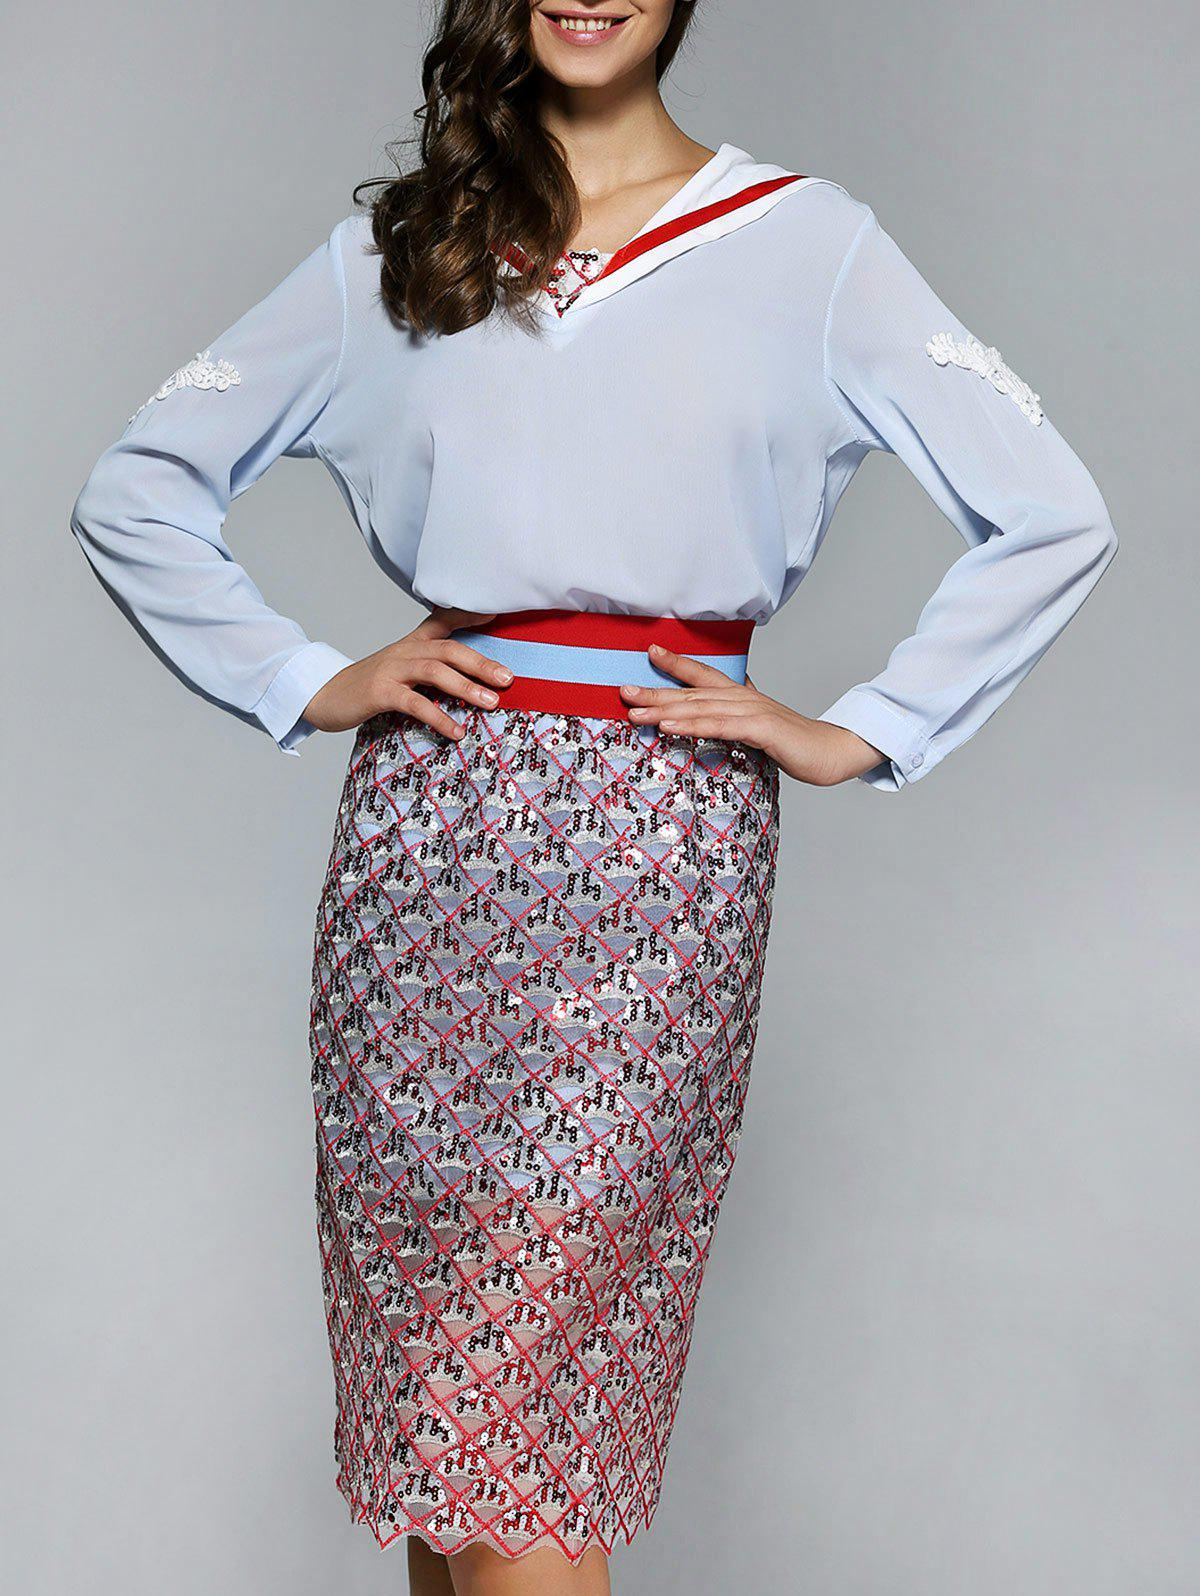 Long Sleeve Blouse and Sequined Skirt